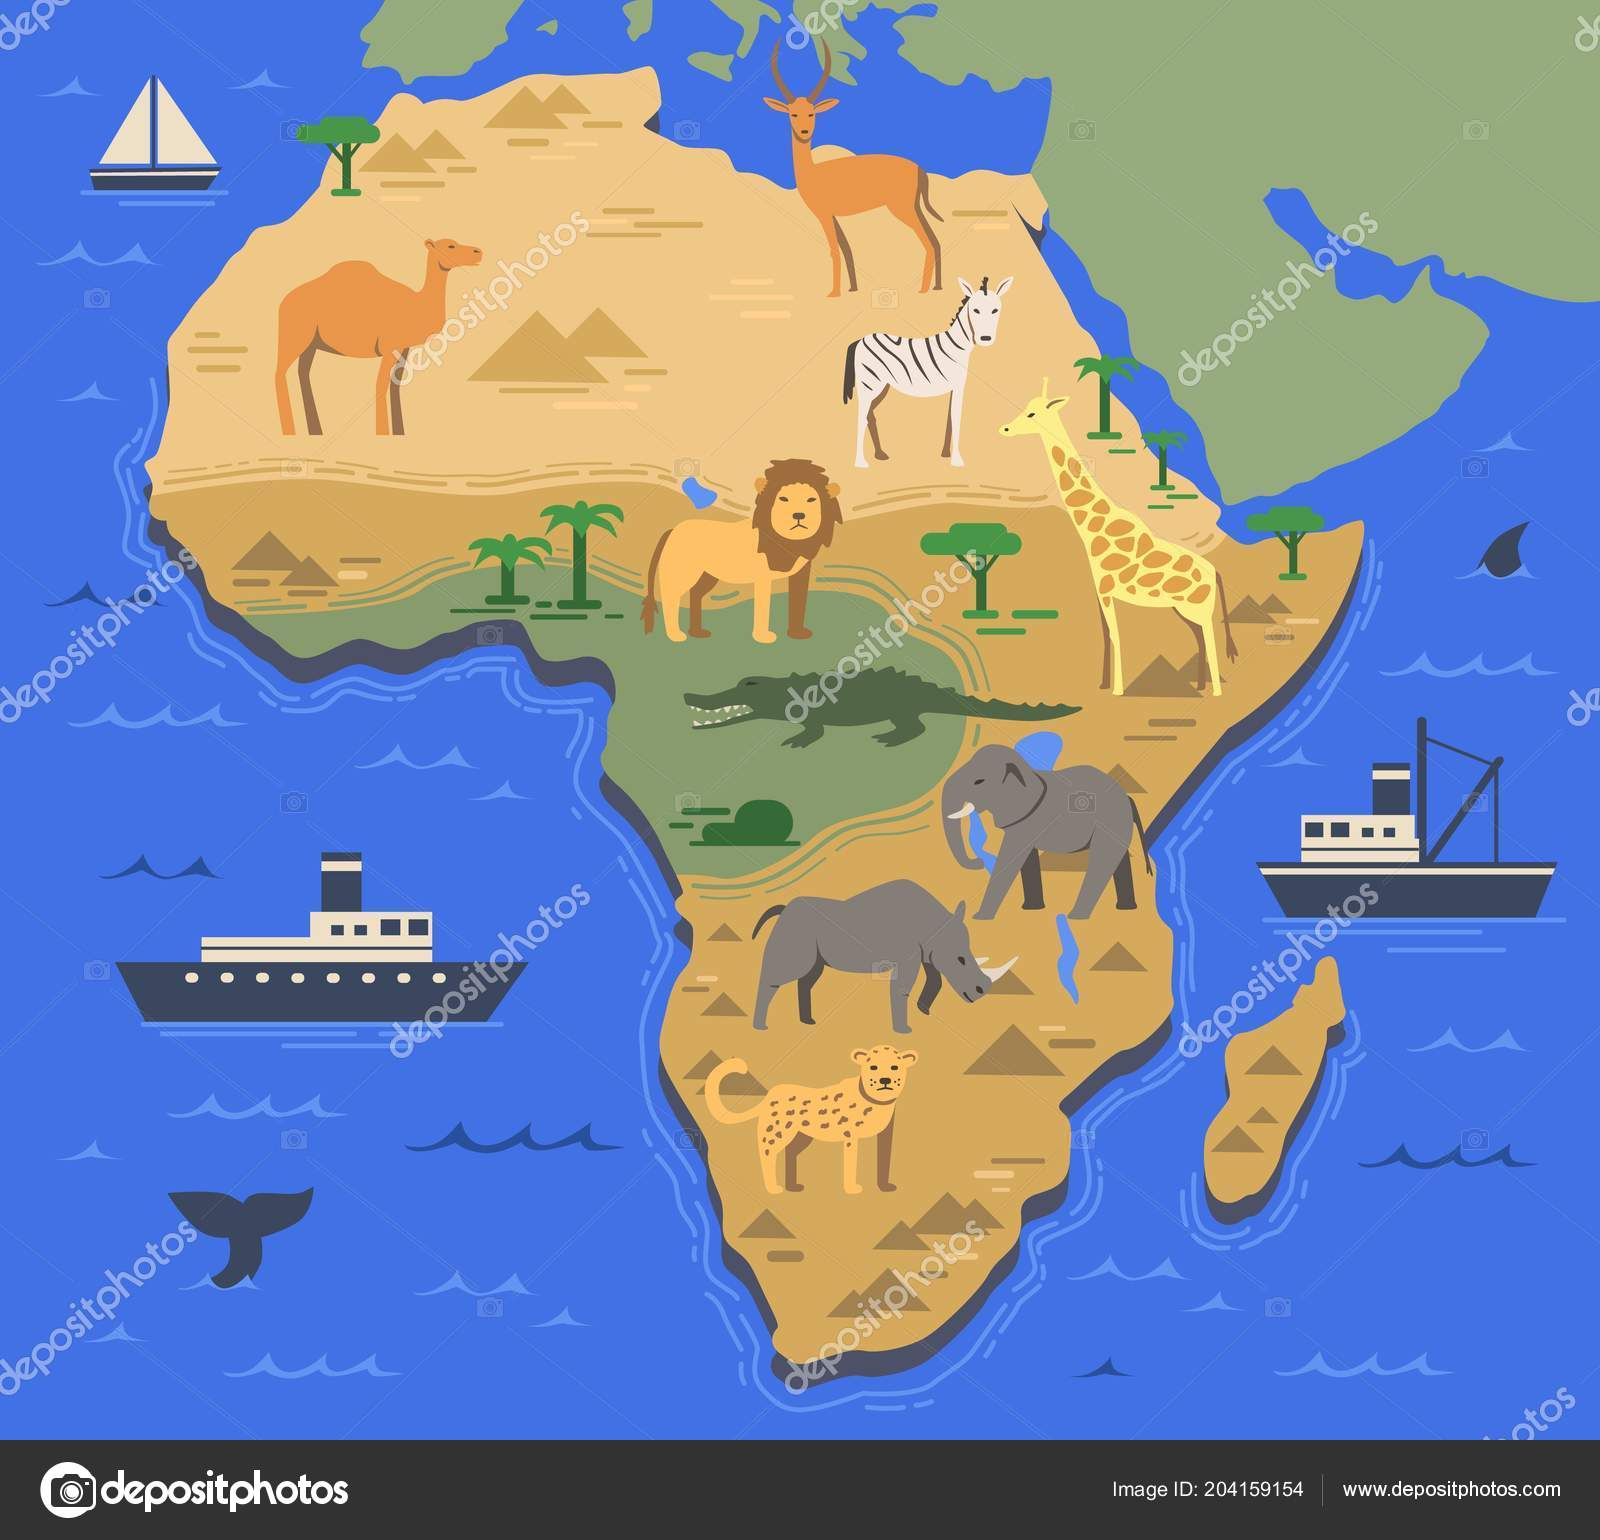 Stylized Africa map with indigenous animals and nature ... on geography of africa, legal map of africa, transportation map of africa, topological map of africa, full map of africa, detailed map of africa, territorial map of africa, blank map of africa, ethnographic map of africa, geographic features of africa, climate map of africa, geographical egypt, labeled map of africa, drakensburg mountains on map of africa, physiological map of africa, mountain ranges in africa, landform map of africa, show me the map of africa, interactive physical map of africa, ecological map of africa,